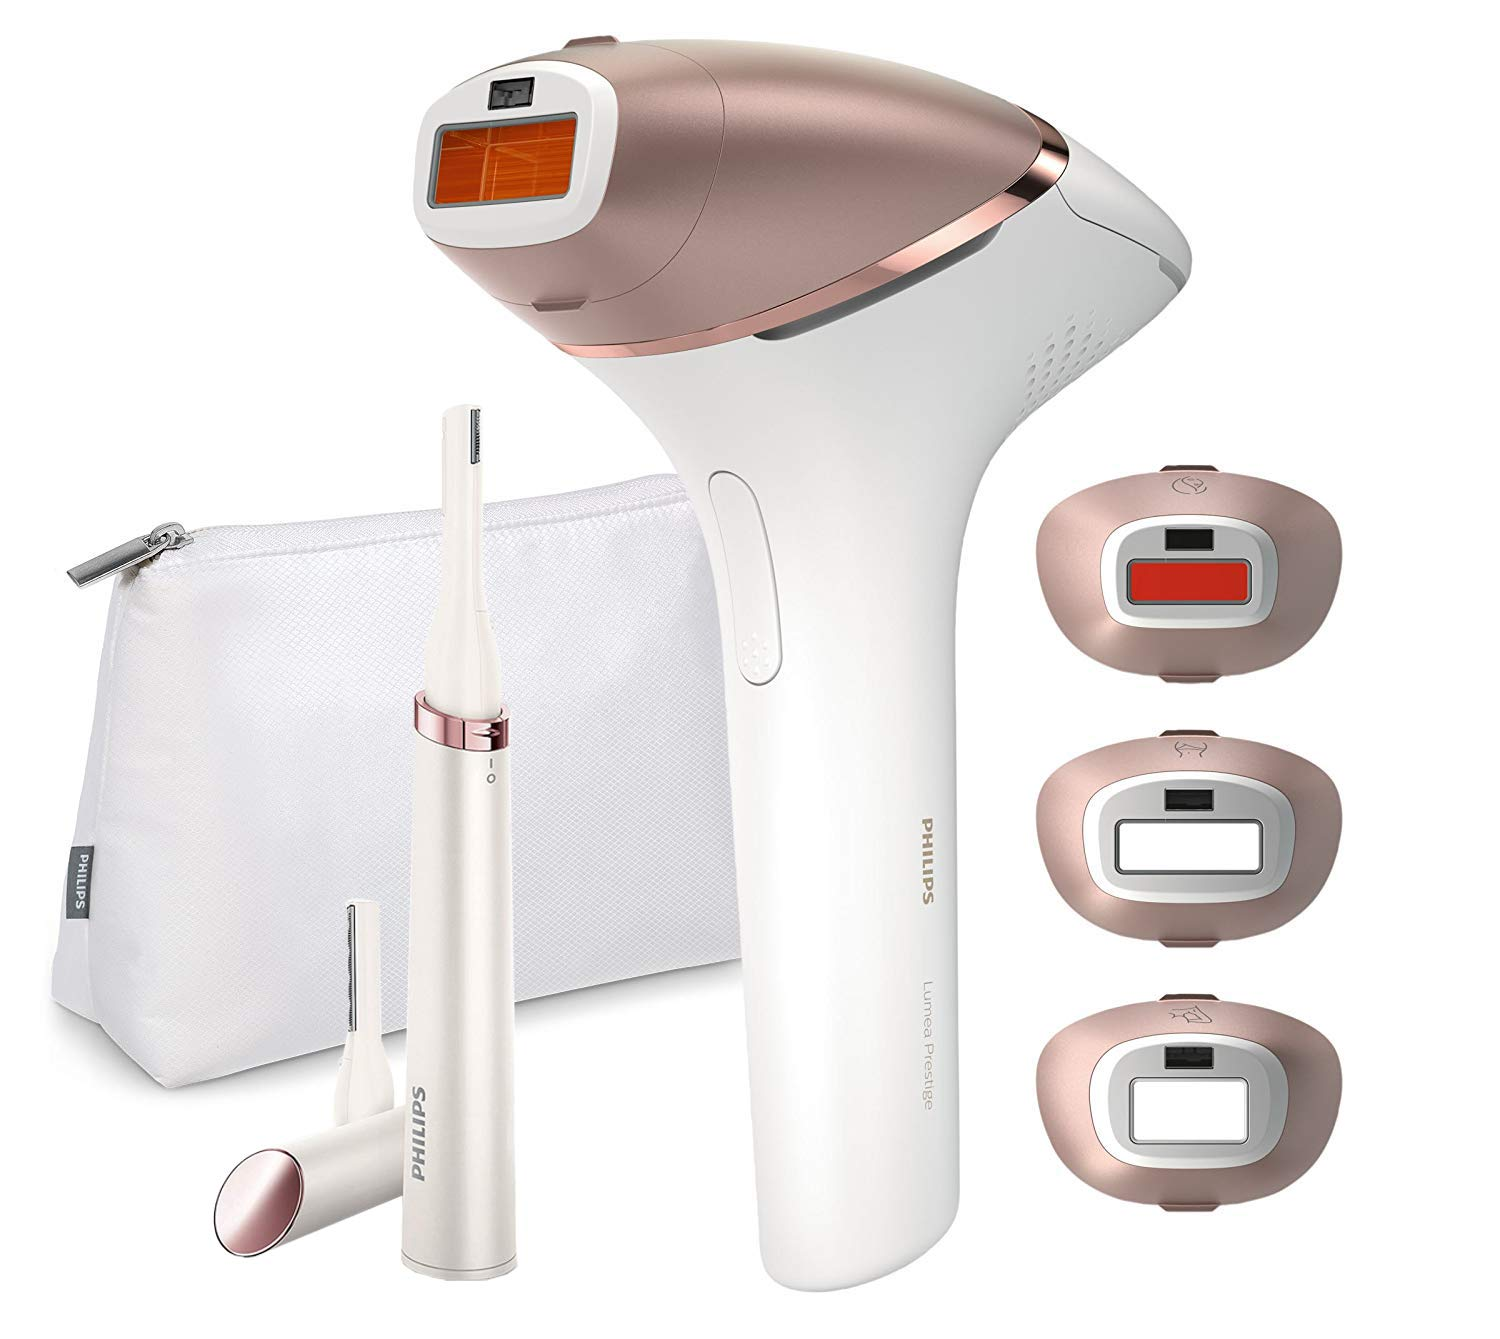 PHILIPS Lumea BRI956/60 Prestige IPL Hair Removal Tool with 4 Attachments for Body, Face, Bikini and Armpits and 1 Satin Compact Touch-Up Pen Trimmer - Cordless and Corded Power - Newest Version